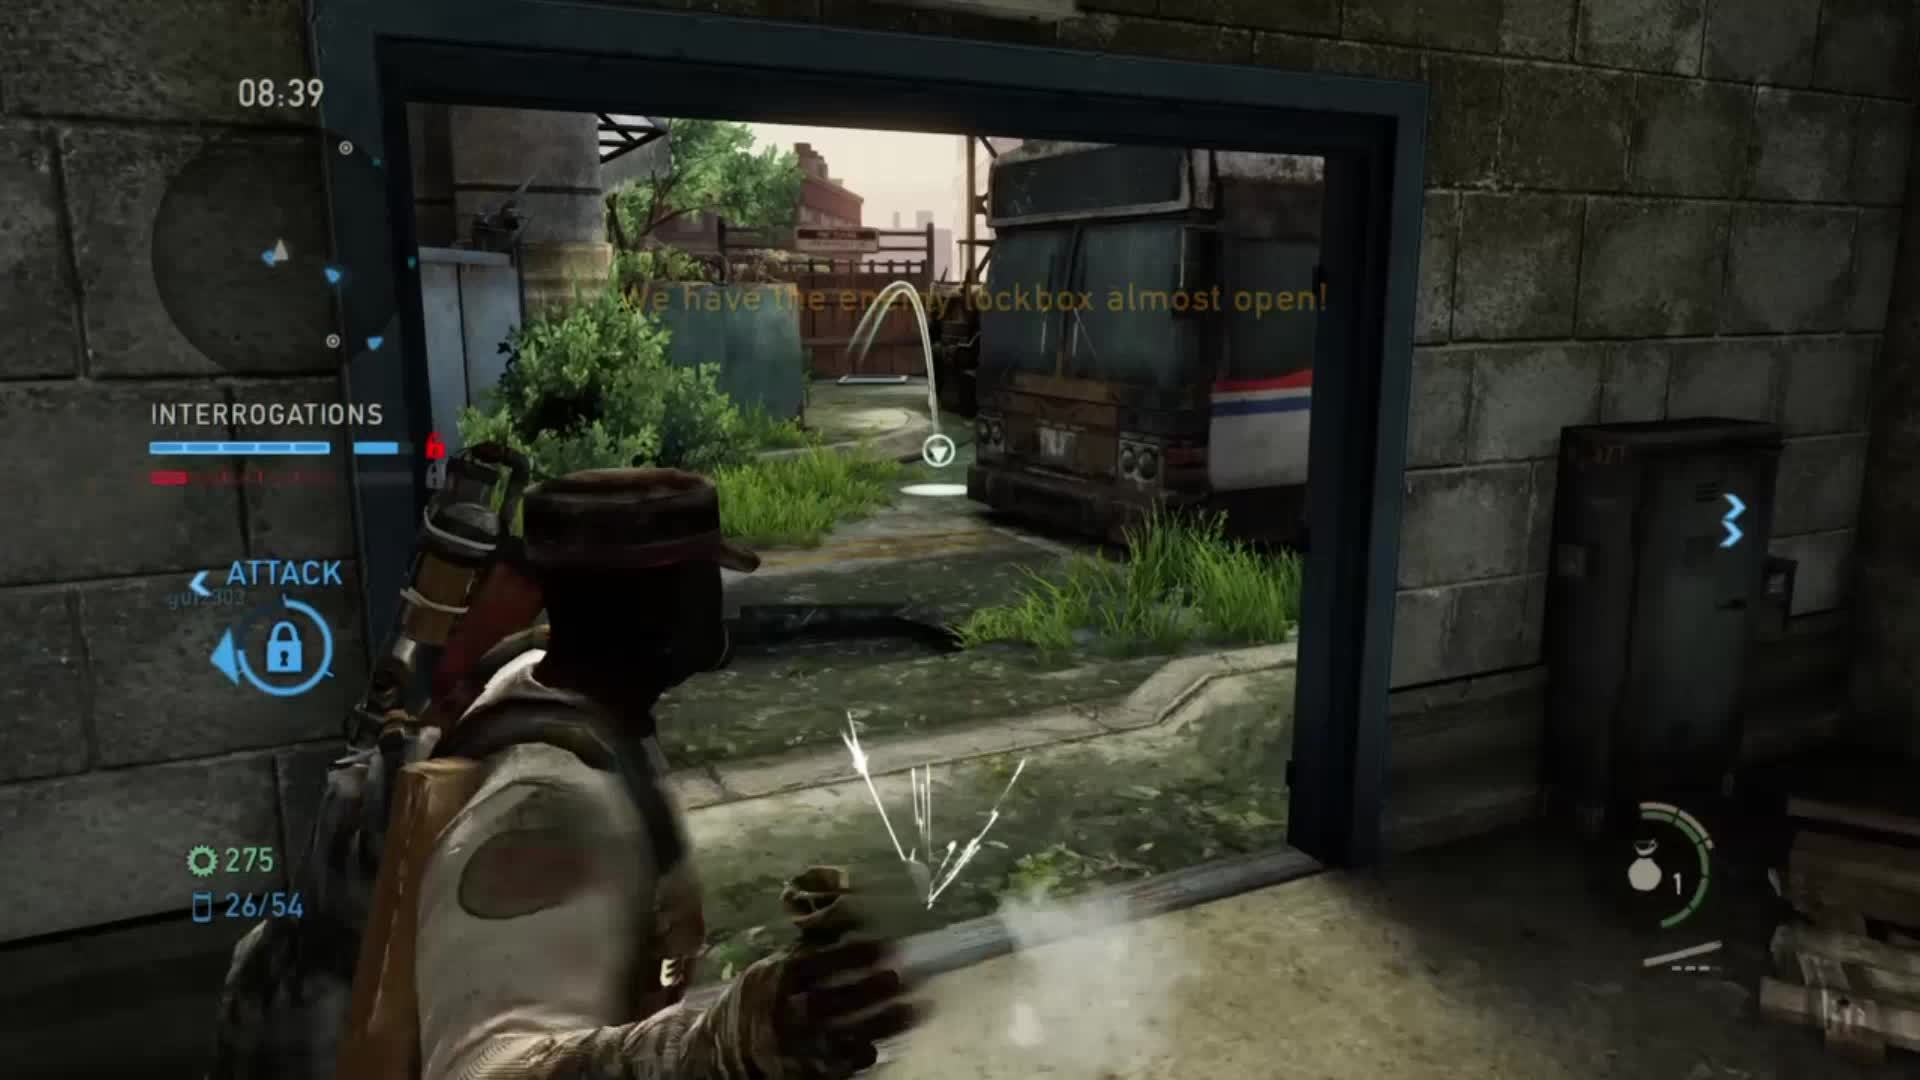 thelastofusfactions, [GIF] Impeccable launcher defense (reddit) GIFs